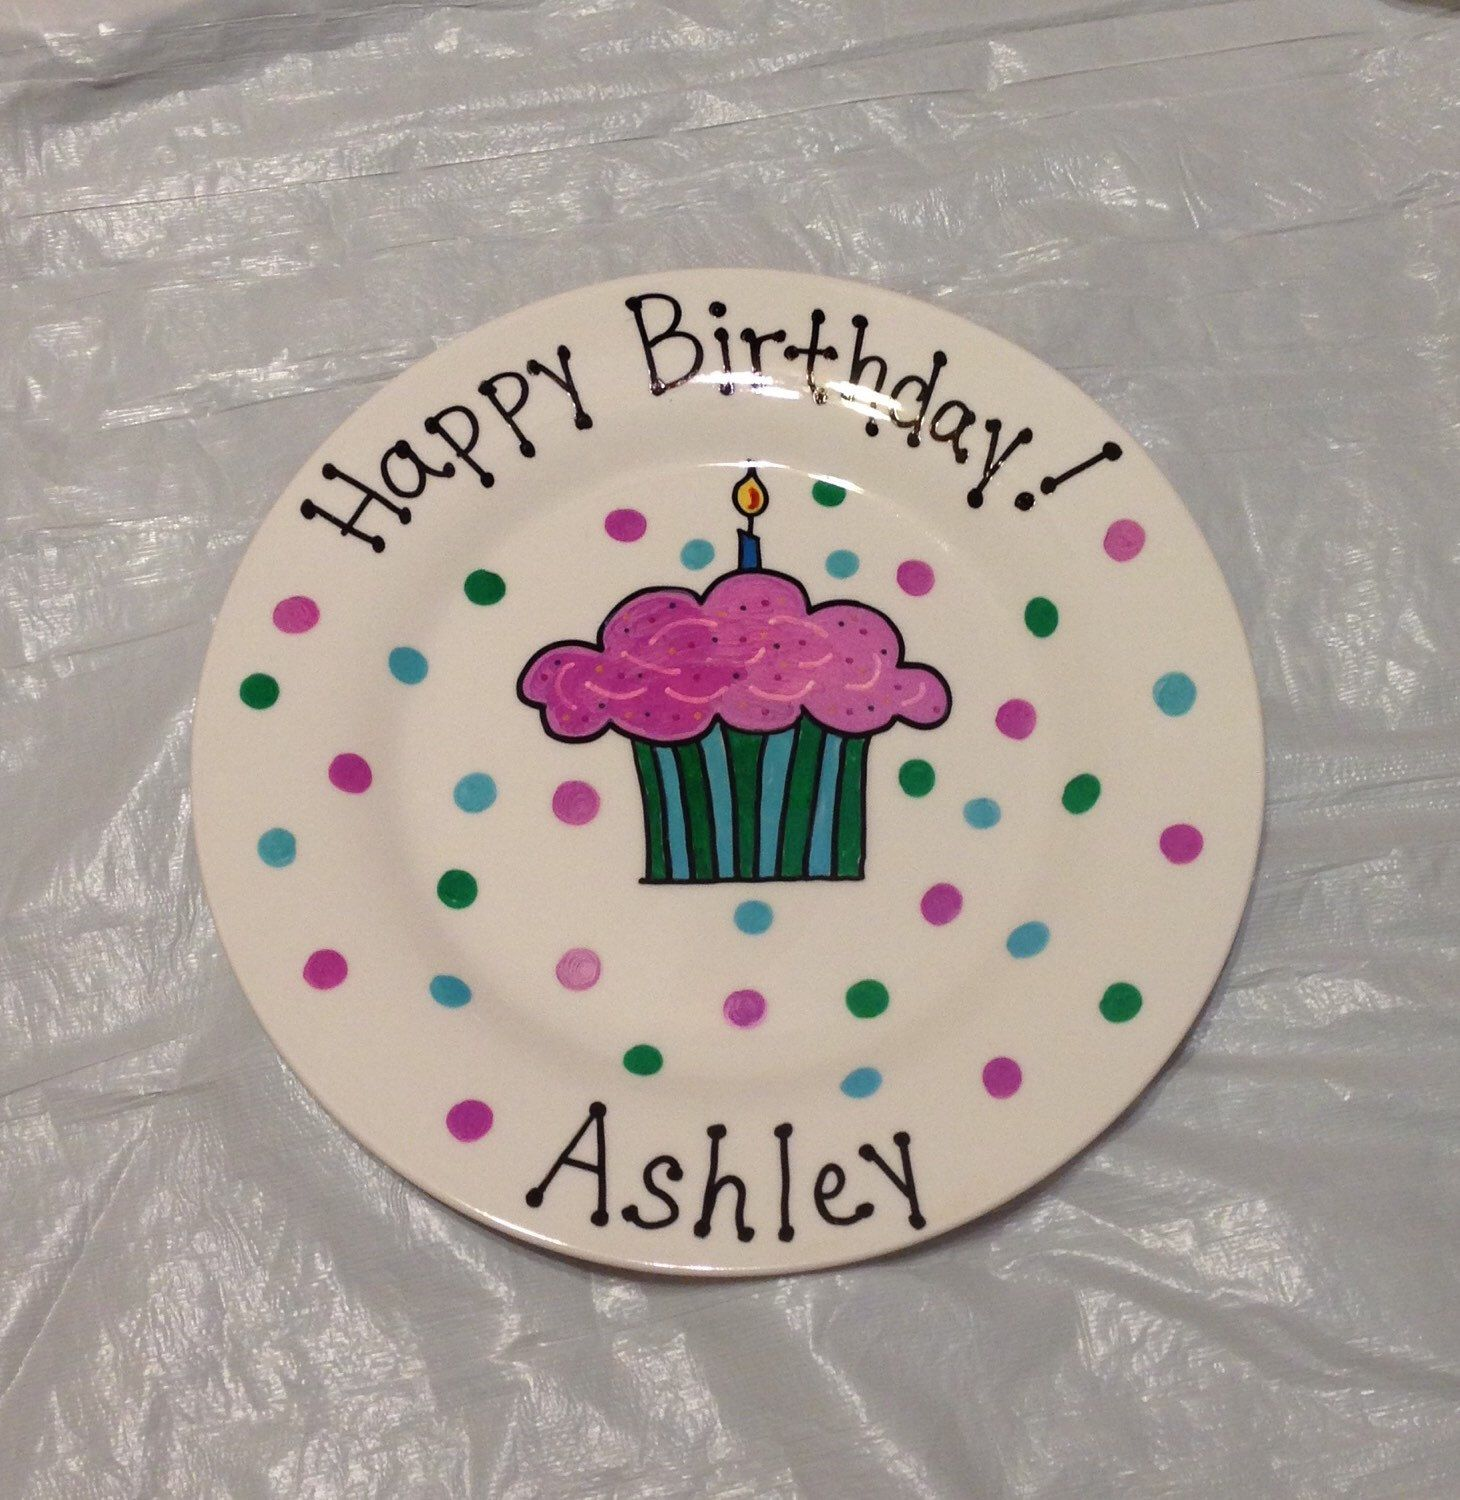 Happy Birthday Plate - Personalized Plate for - Kids - Hand Painted Ceramic Plate - Gift Plate Birthday Gift for Girl Birthday Gift & Happy Birthday Plate - Personalized Plate for - Kids - Hand Painted ...